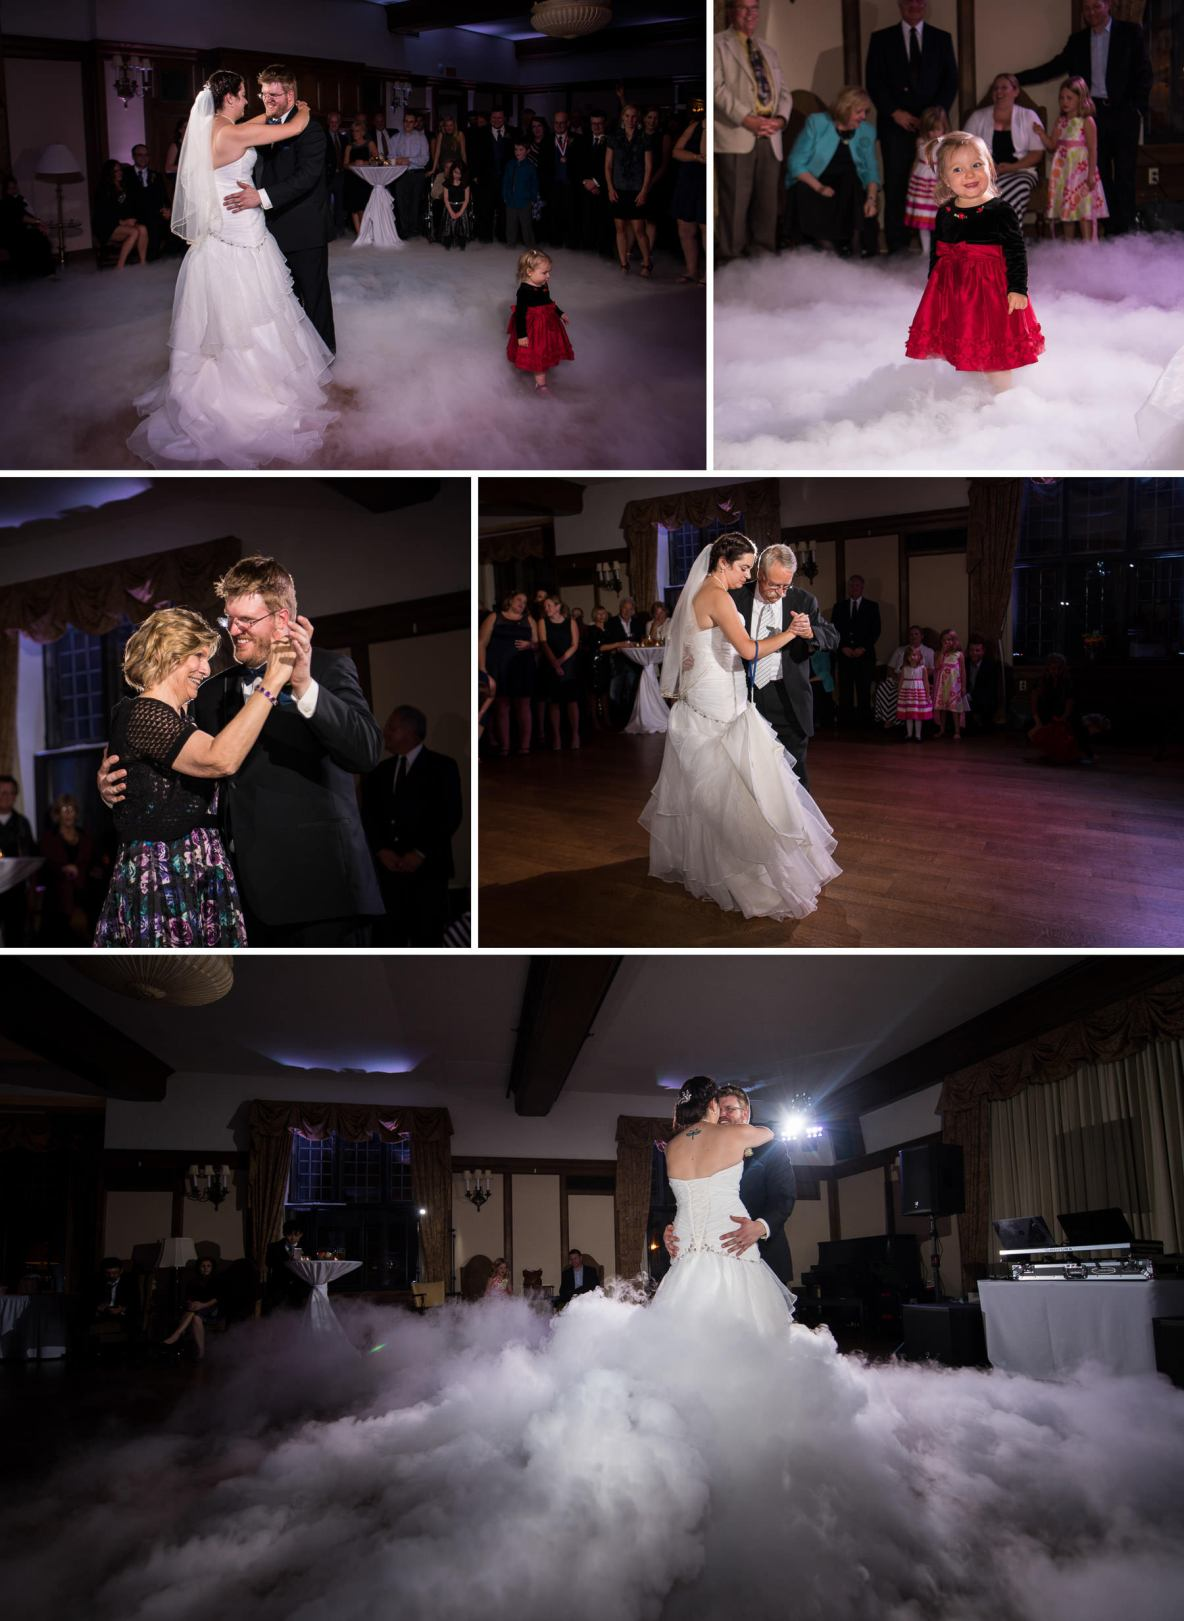 First dance photos on a smoky dance floor.